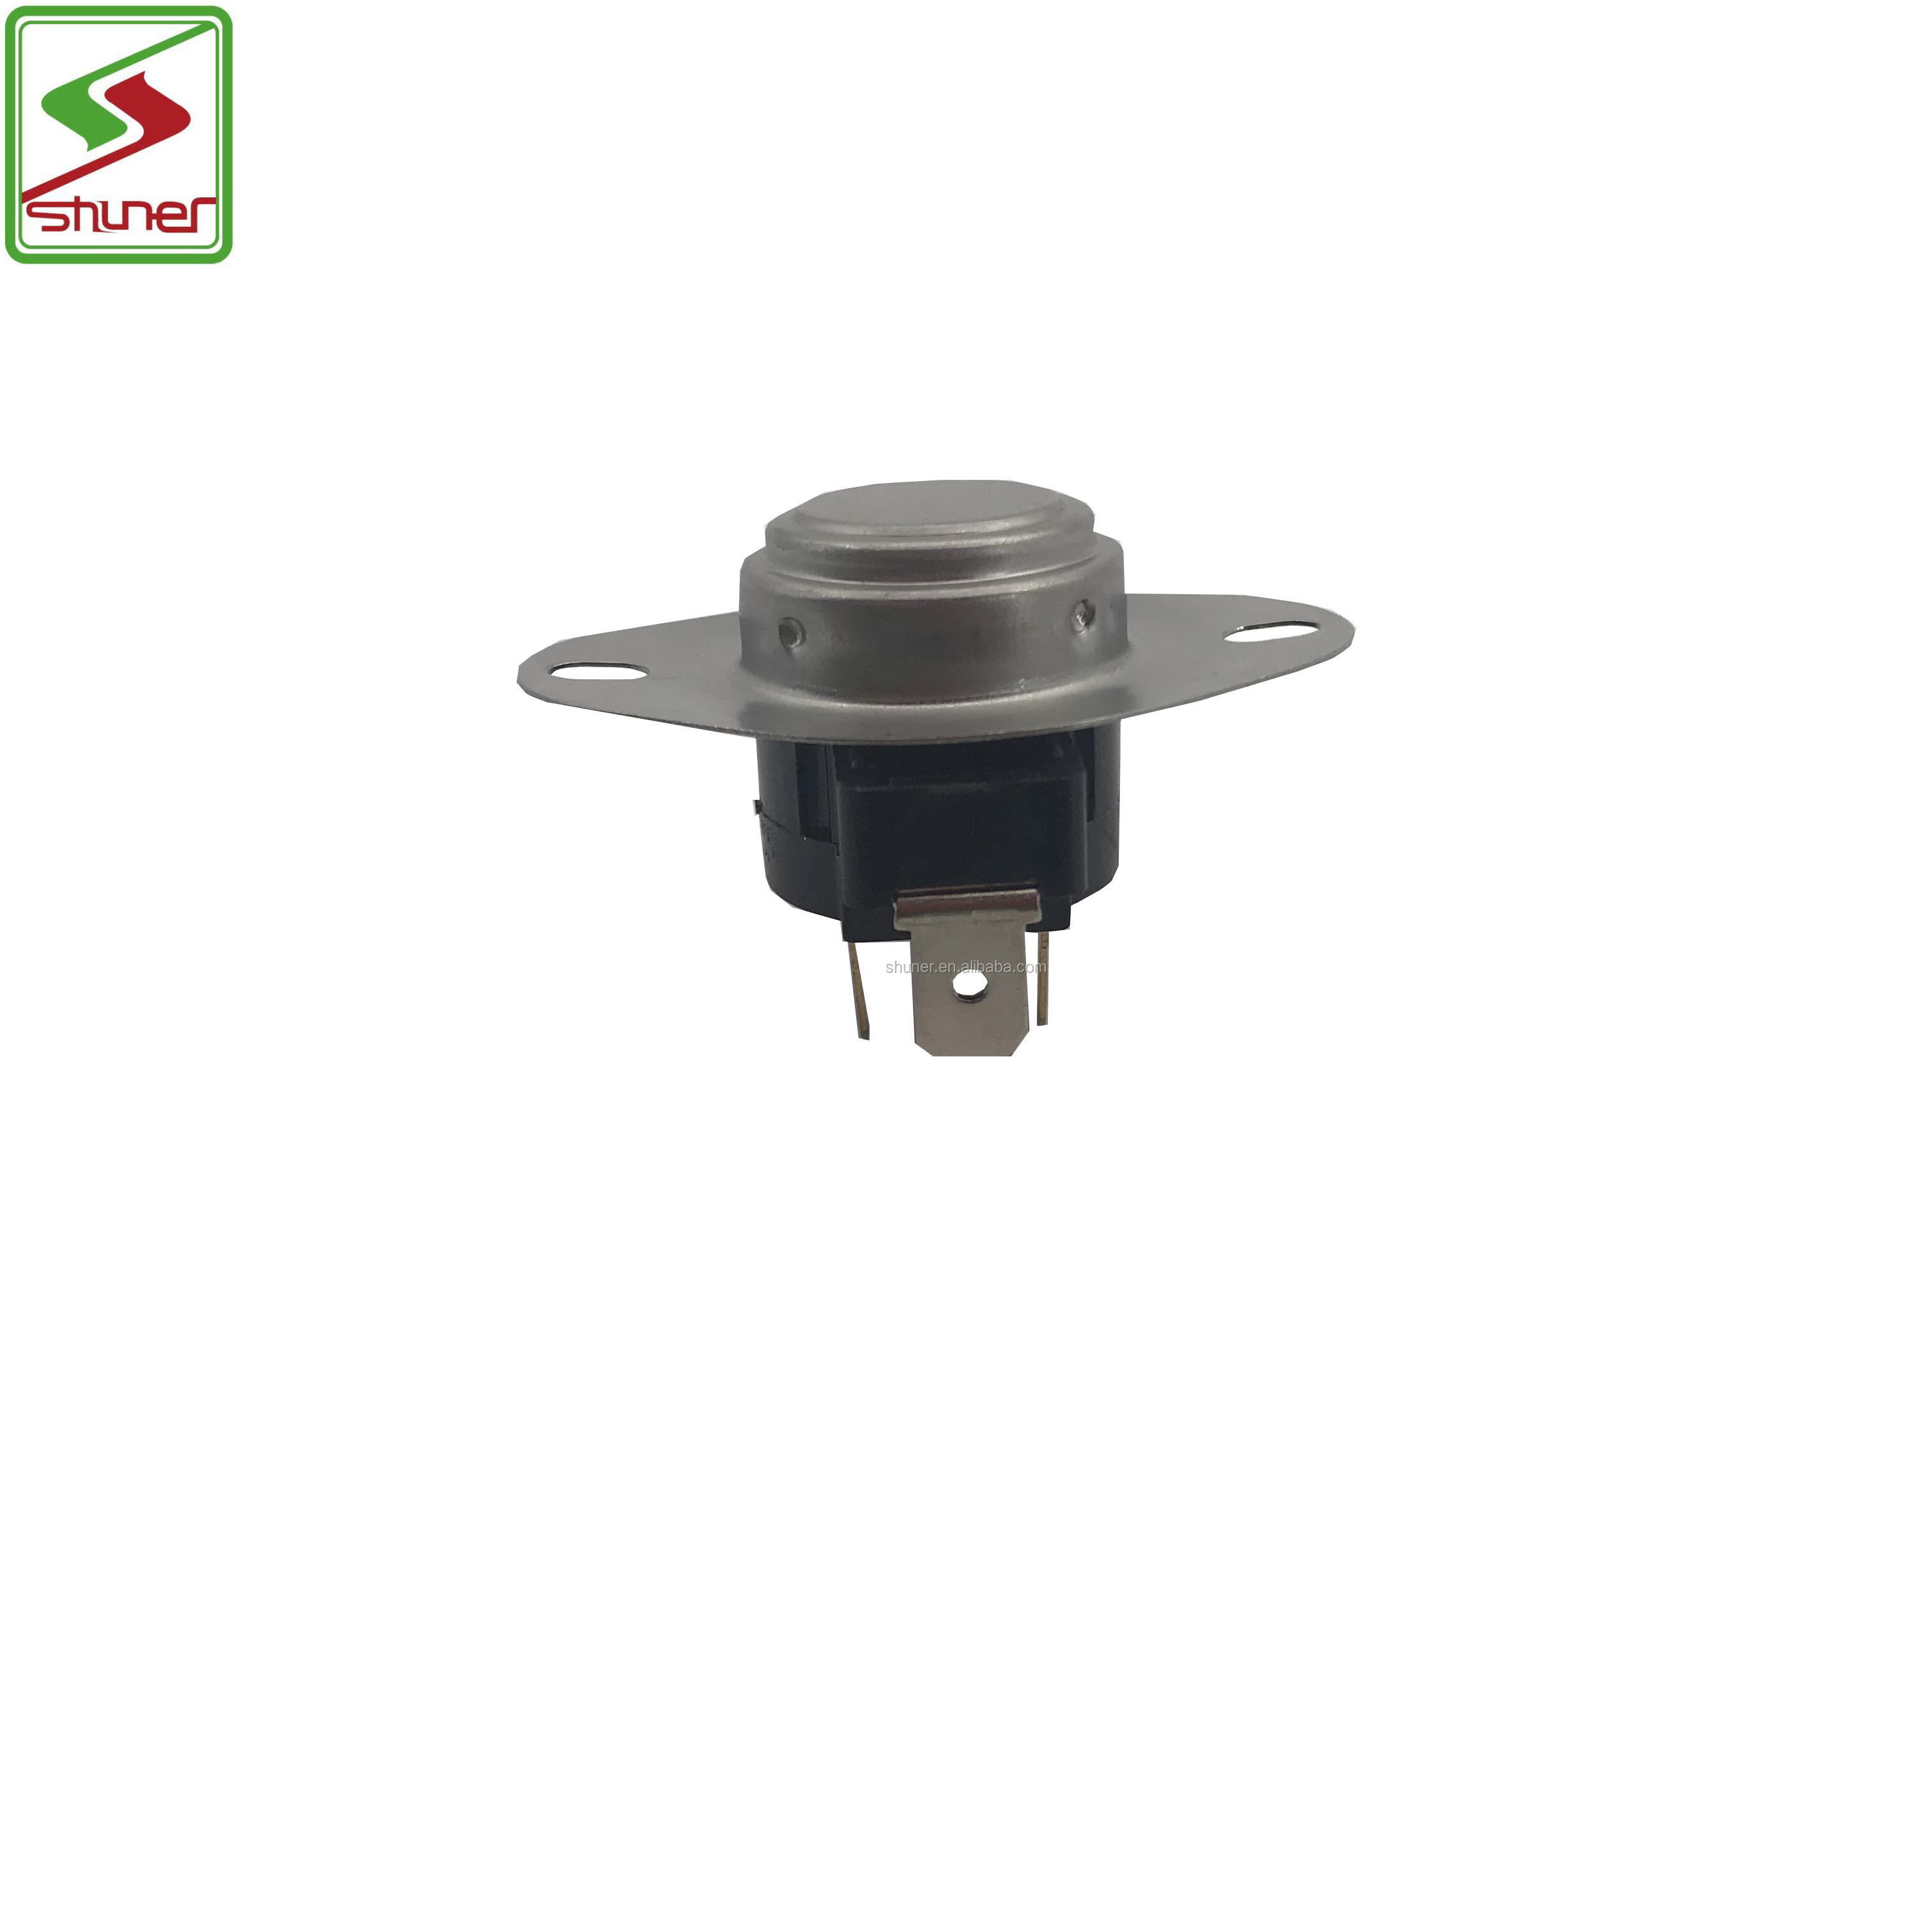 3387134 Cycling Thermostat Replacement Part for Whirlpool Kenmore Maytag dryers - Replaces 3387135 3387139 WP3387134VP